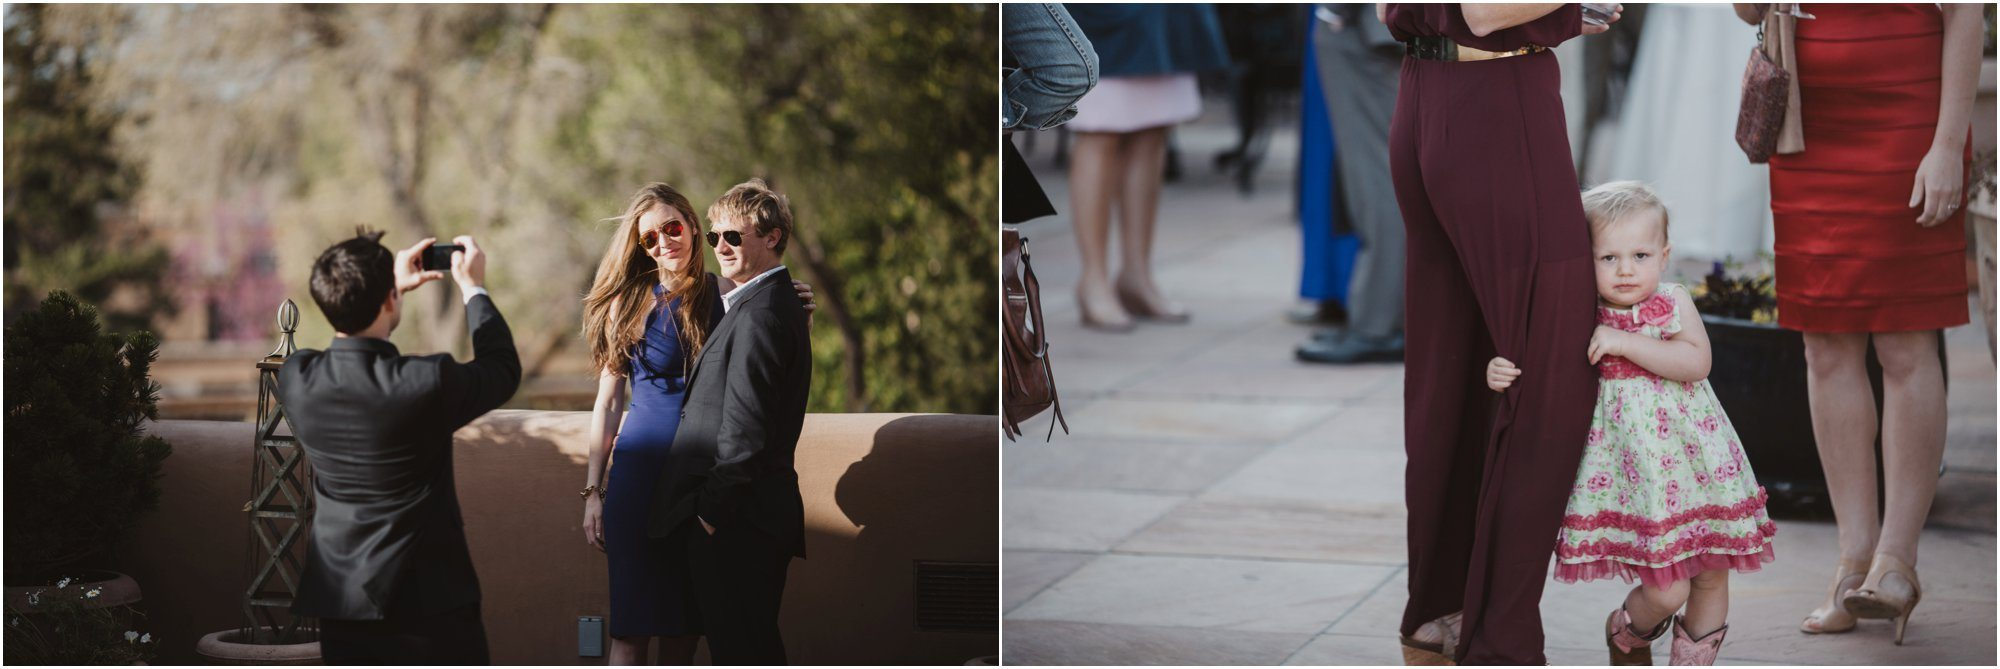 0057Top Santa Fe Wedding Photographer_Best Albuquerque Wedding Photographer_ Blue Rose Photography_ La Fonda Wedding Pictures